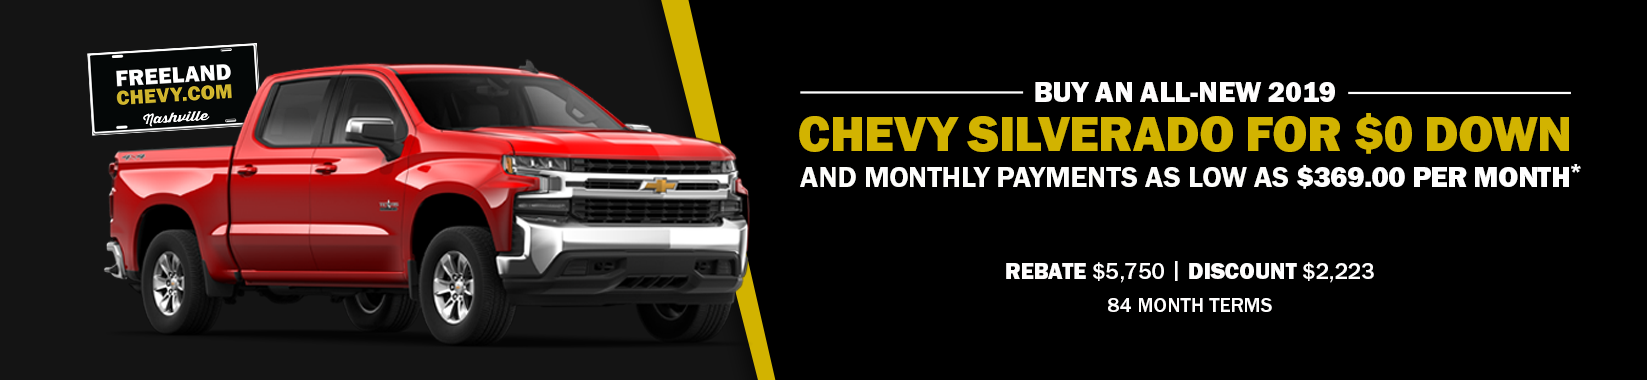 Buy an all-new 2019 Chevy Silverado for $0 down and monthly payments as low as $369.00 per month!